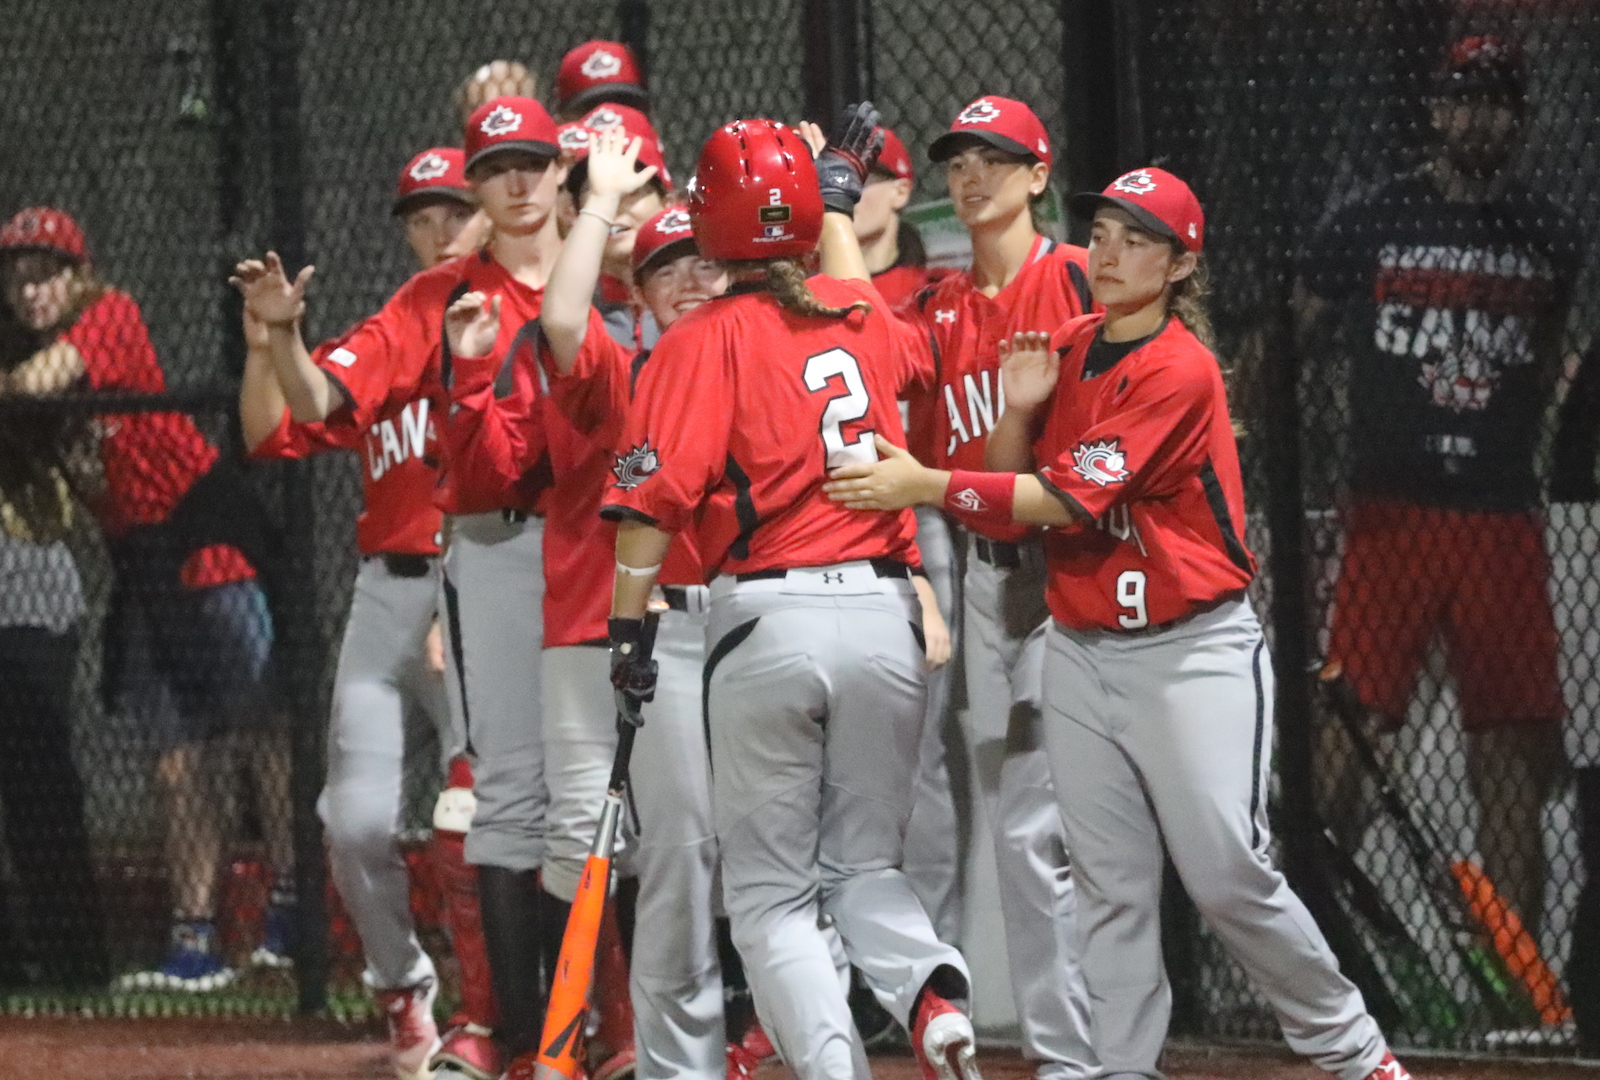 Women's Baseball World Cup: Canada slugs out win over Australia